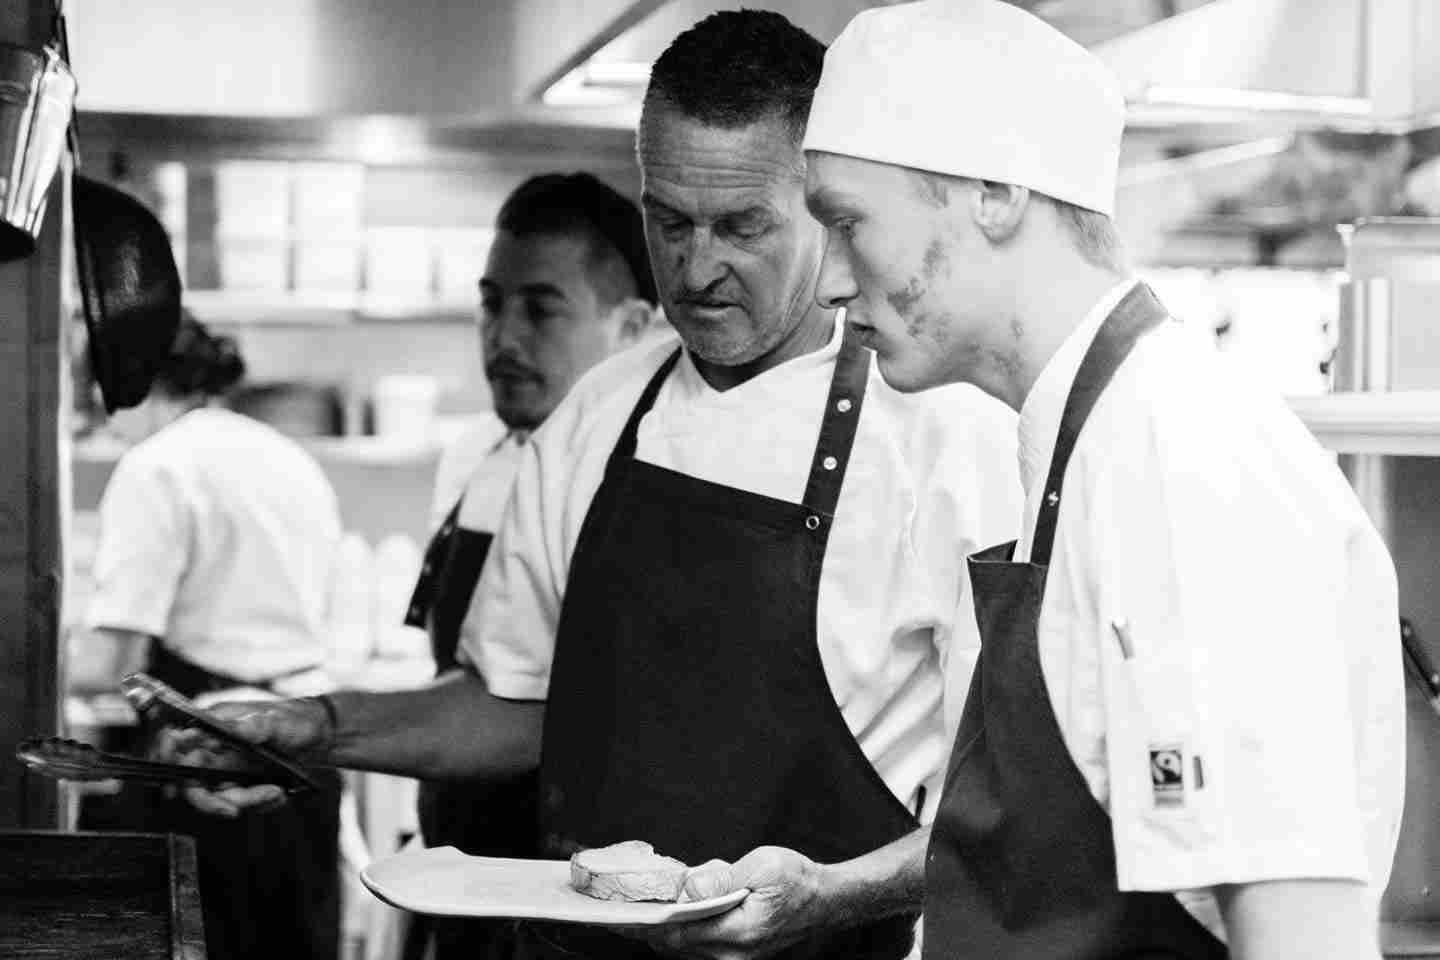 Fifteen Cornwall Chef Training Programme